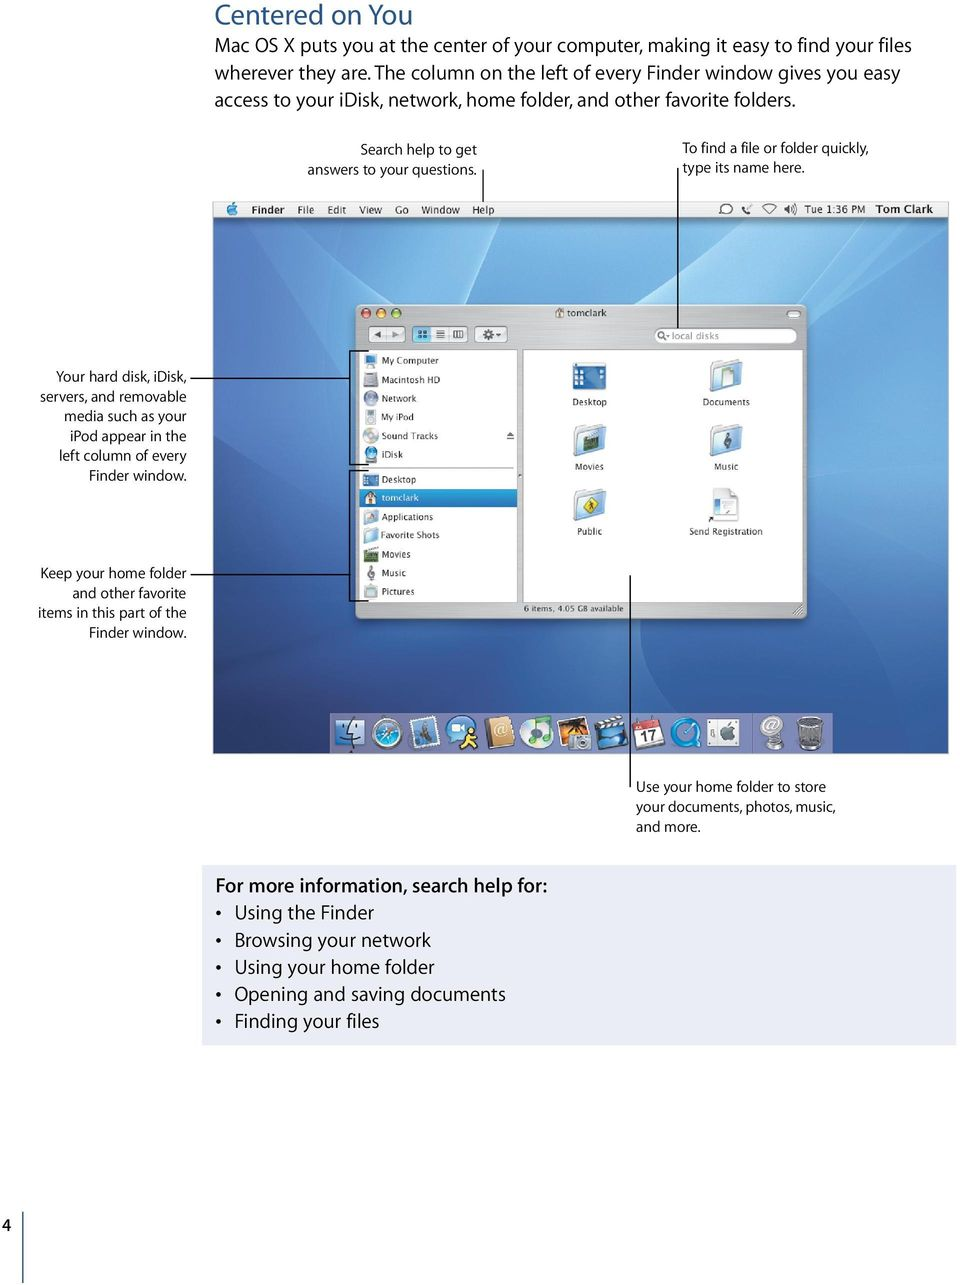 To find a file or folder quickly, type its name here. Your hard disk, idisk, servers, and removable media such as your ipod appear in the left column of every Finder window.